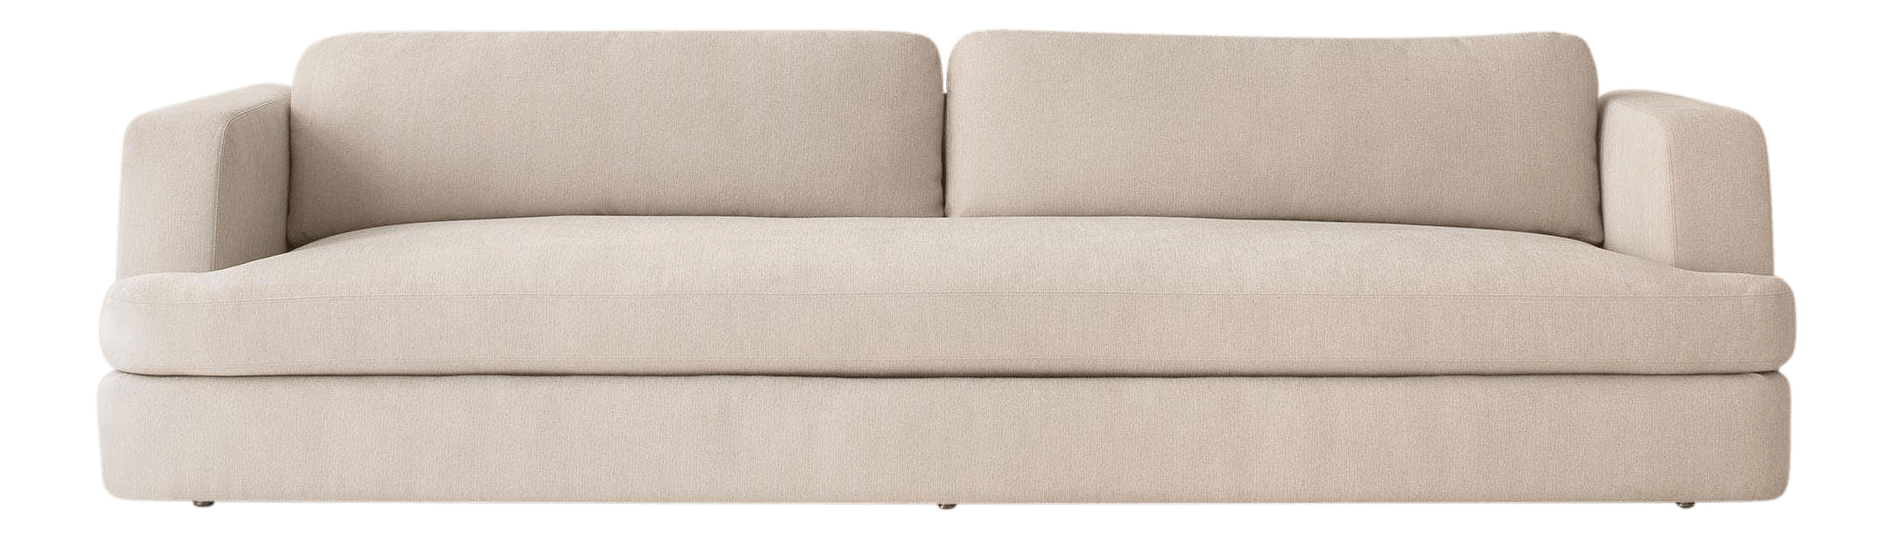 chelsea square sofa simmons sleeper review incredible borgo decaso for sale our